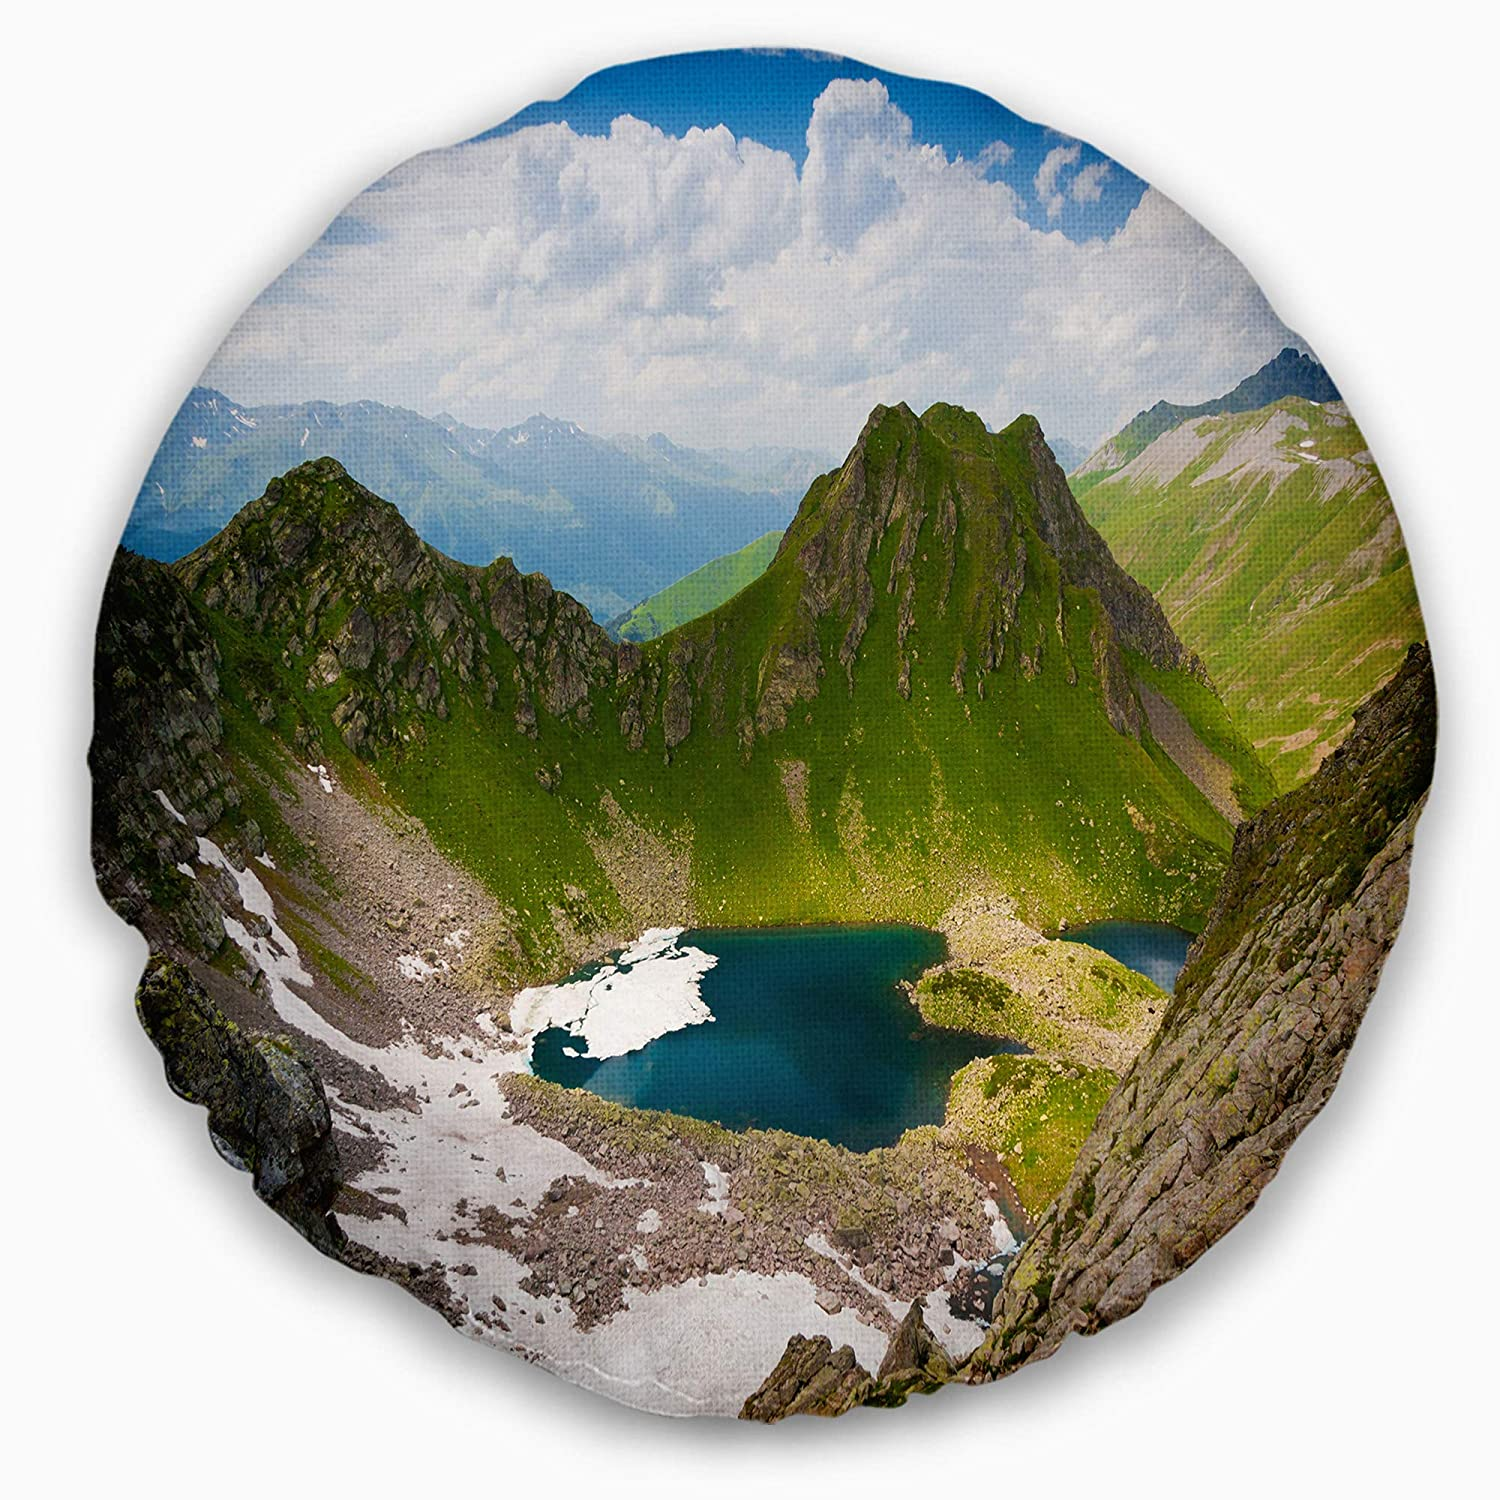 16 Designart CU13792-16-16-C Mountain Lake View on Bright Day Landscape Printed Round Cushion Cover for Living Room Sofa Insert Side Throw Pillow